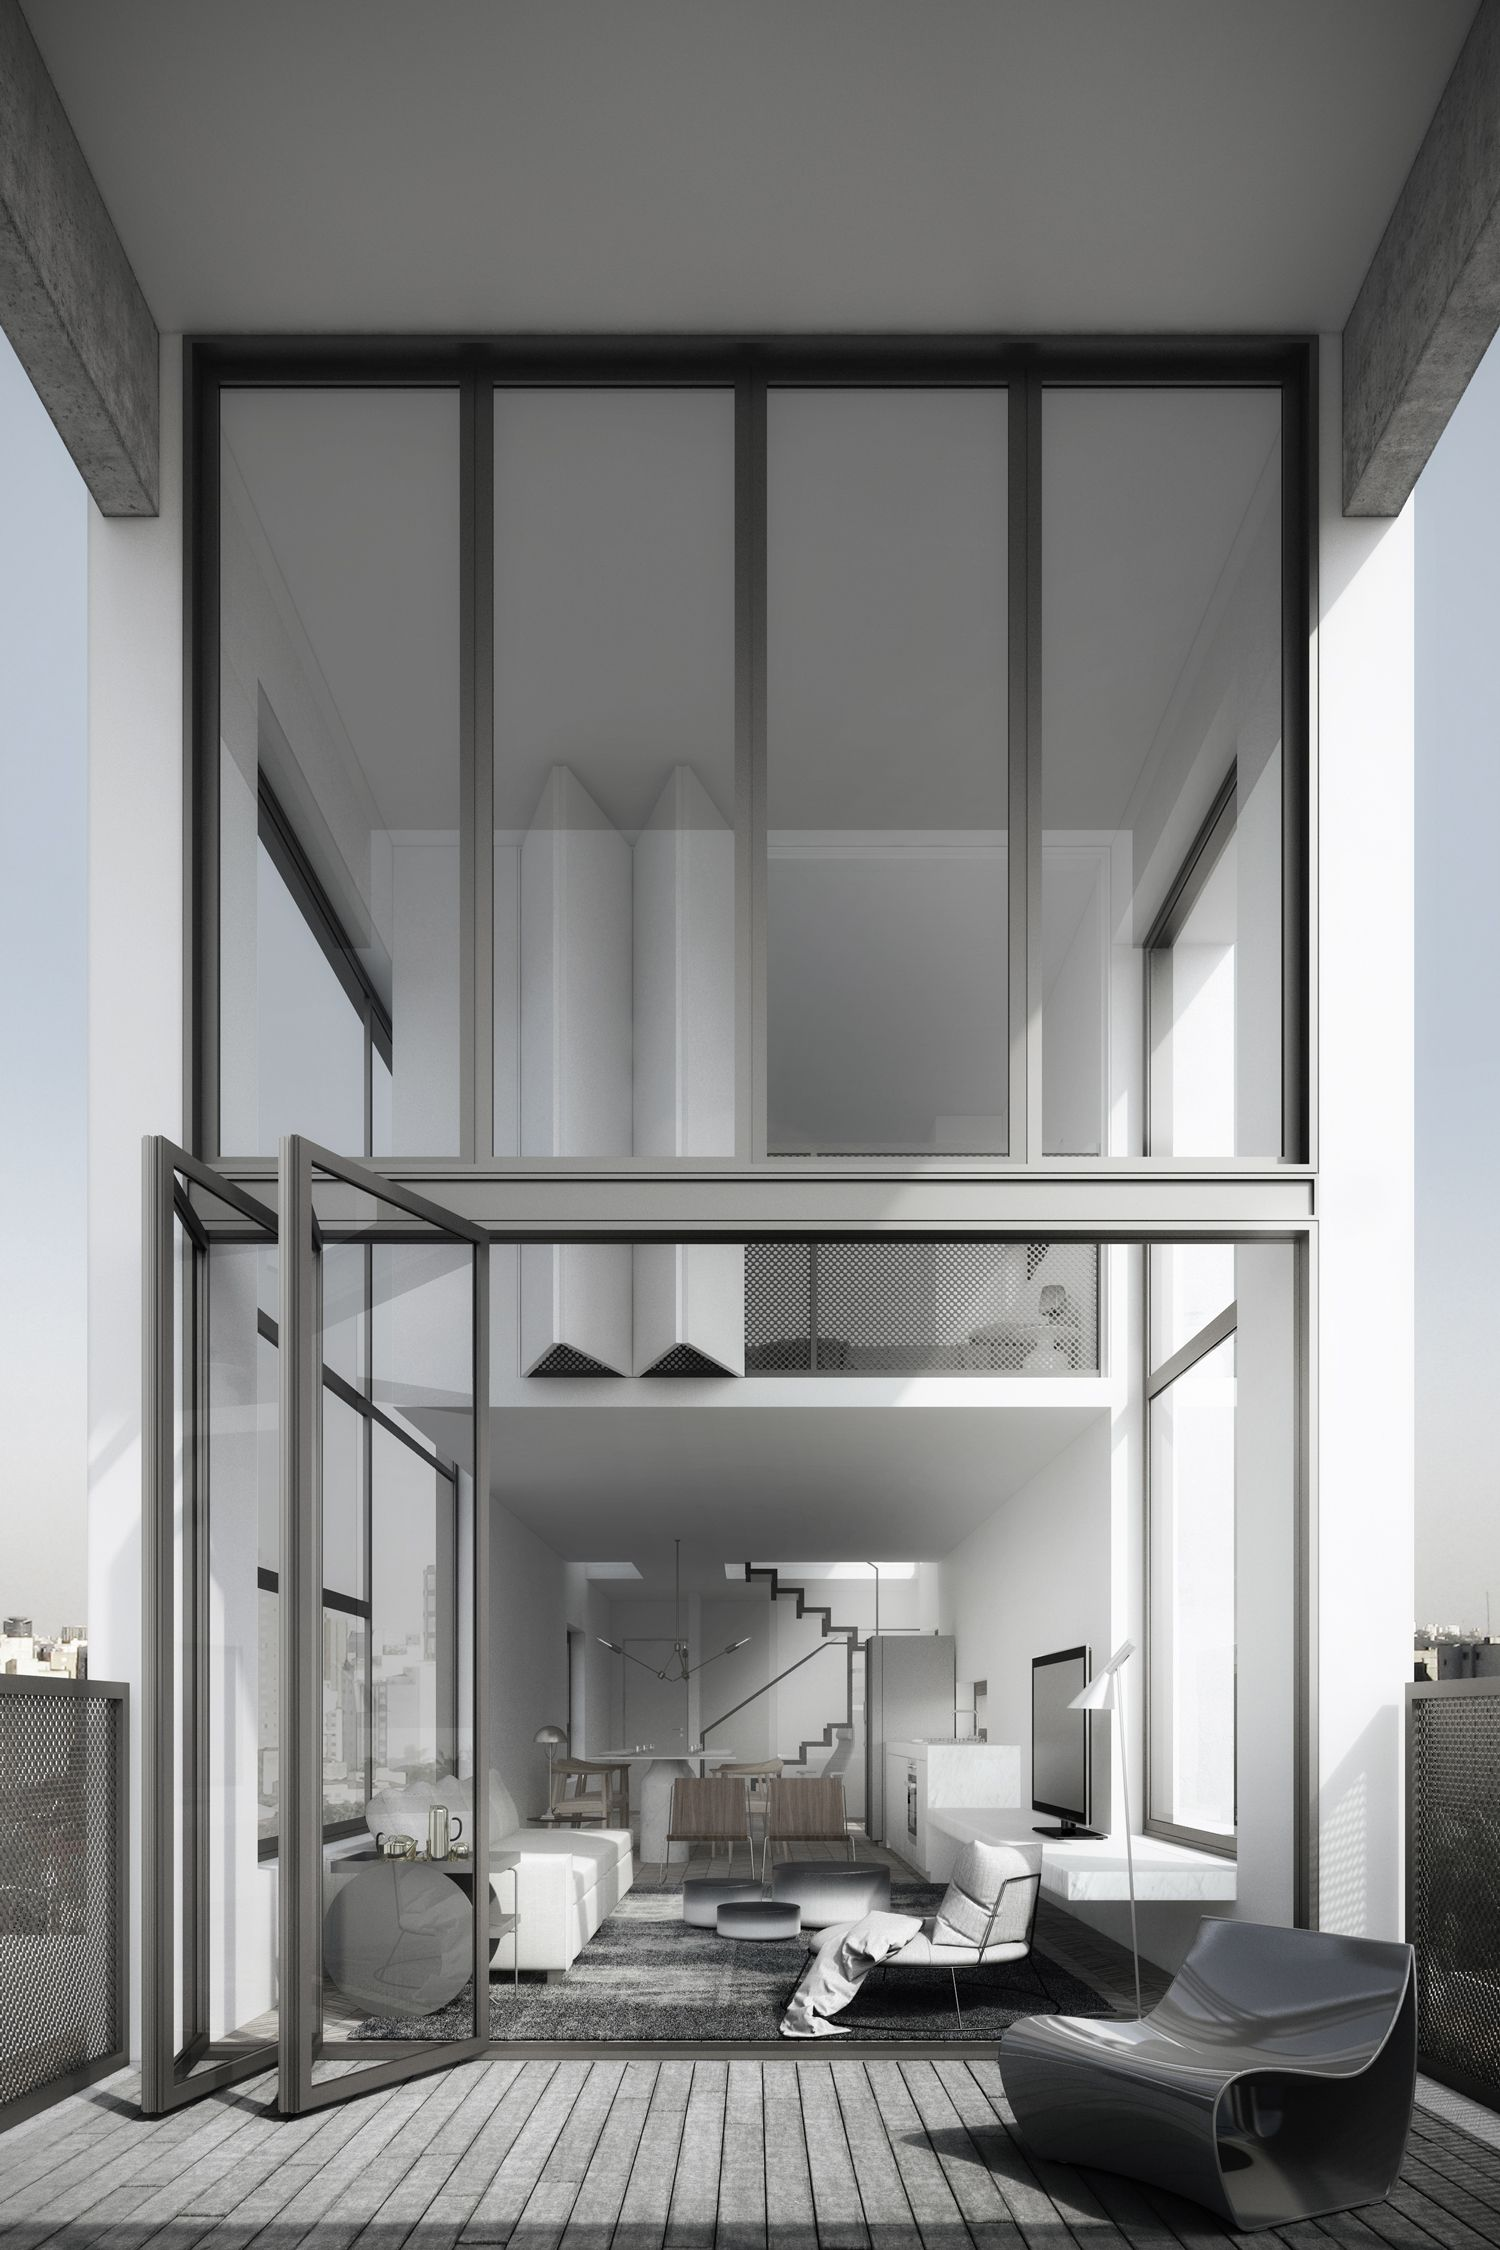 Air madalena sao paulo tower upper floor loft with view of retractable wall image courtesy of triptyque